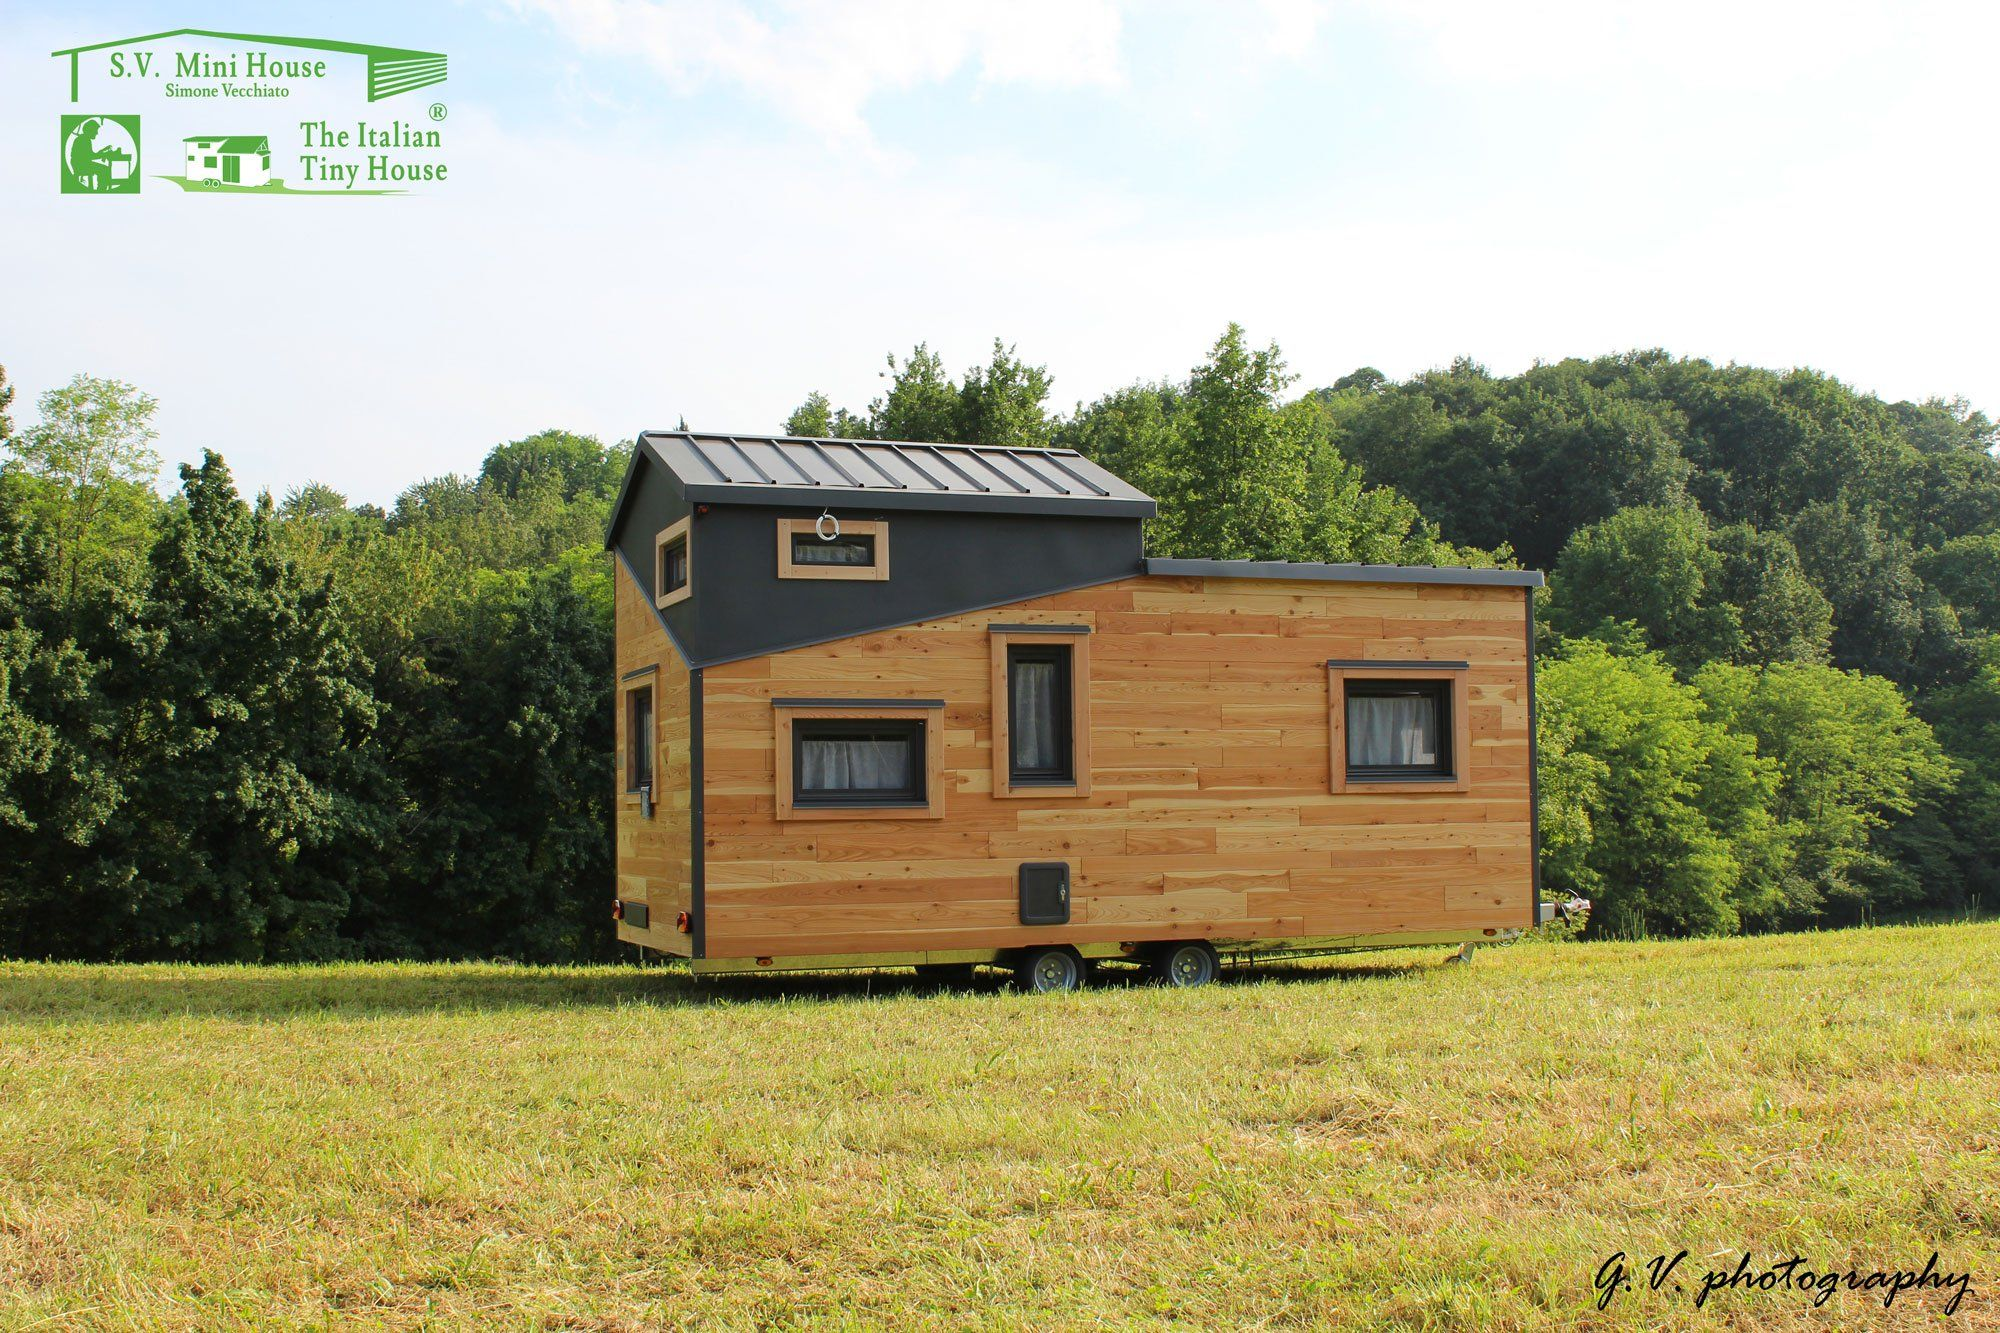 Comprare Tiny House In Italia s.v. mini house ® di simone vecchiato – the italian tiny house ®